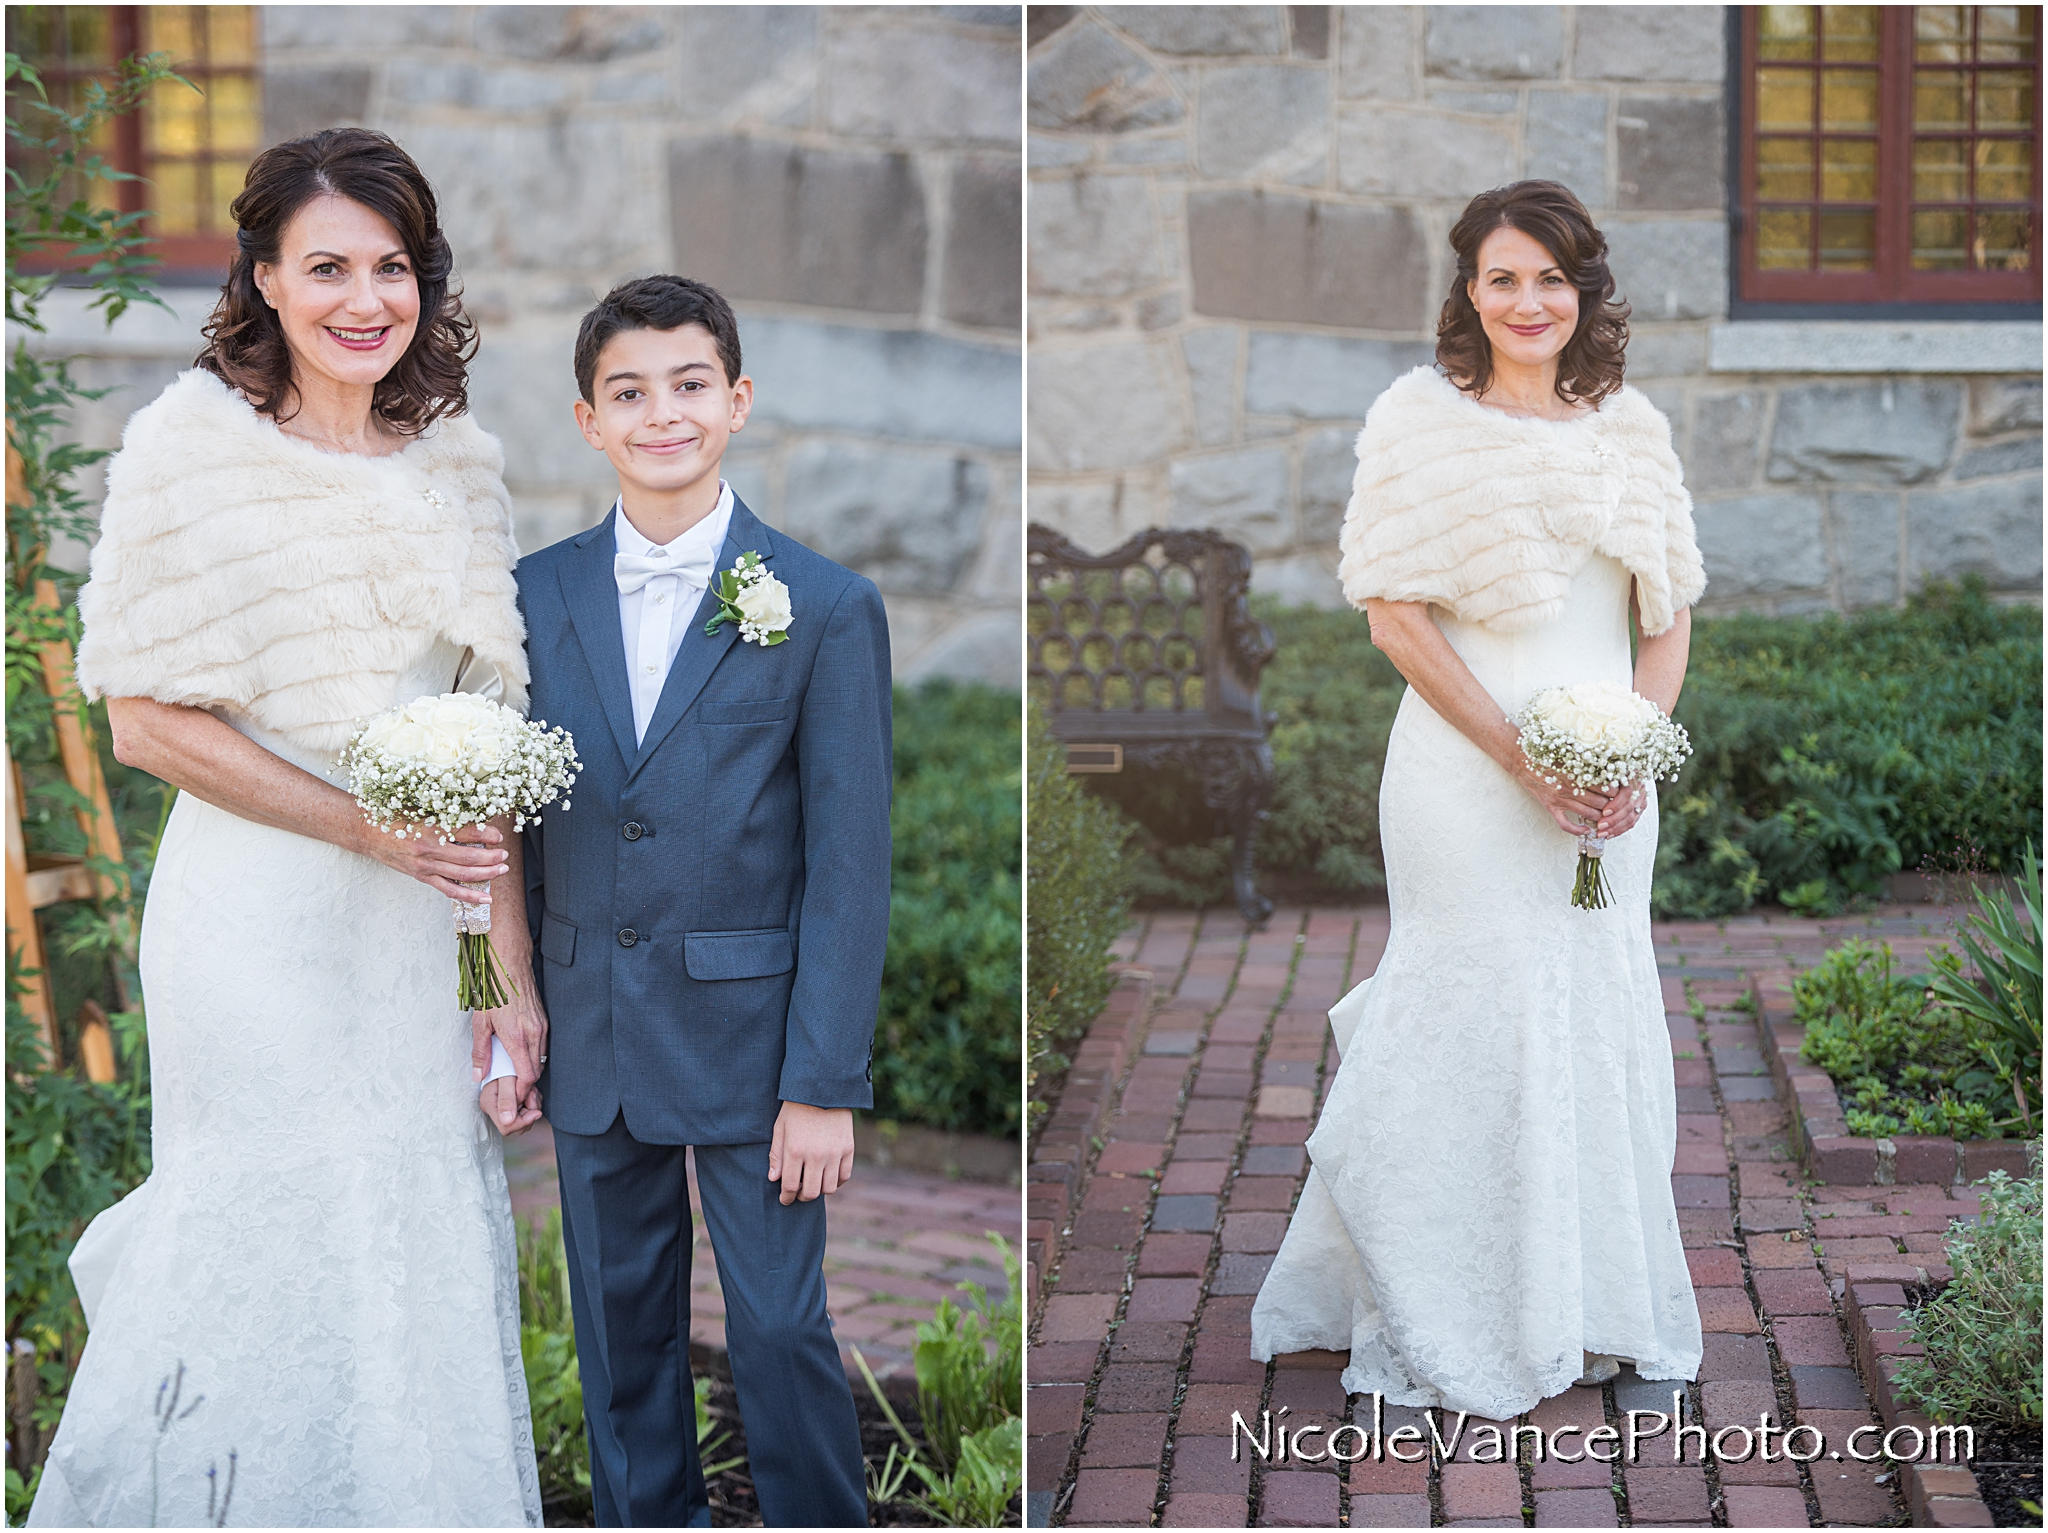 The bride poses with her son and shows off her beautiful gown just prior to the wedding at Maymont Park.